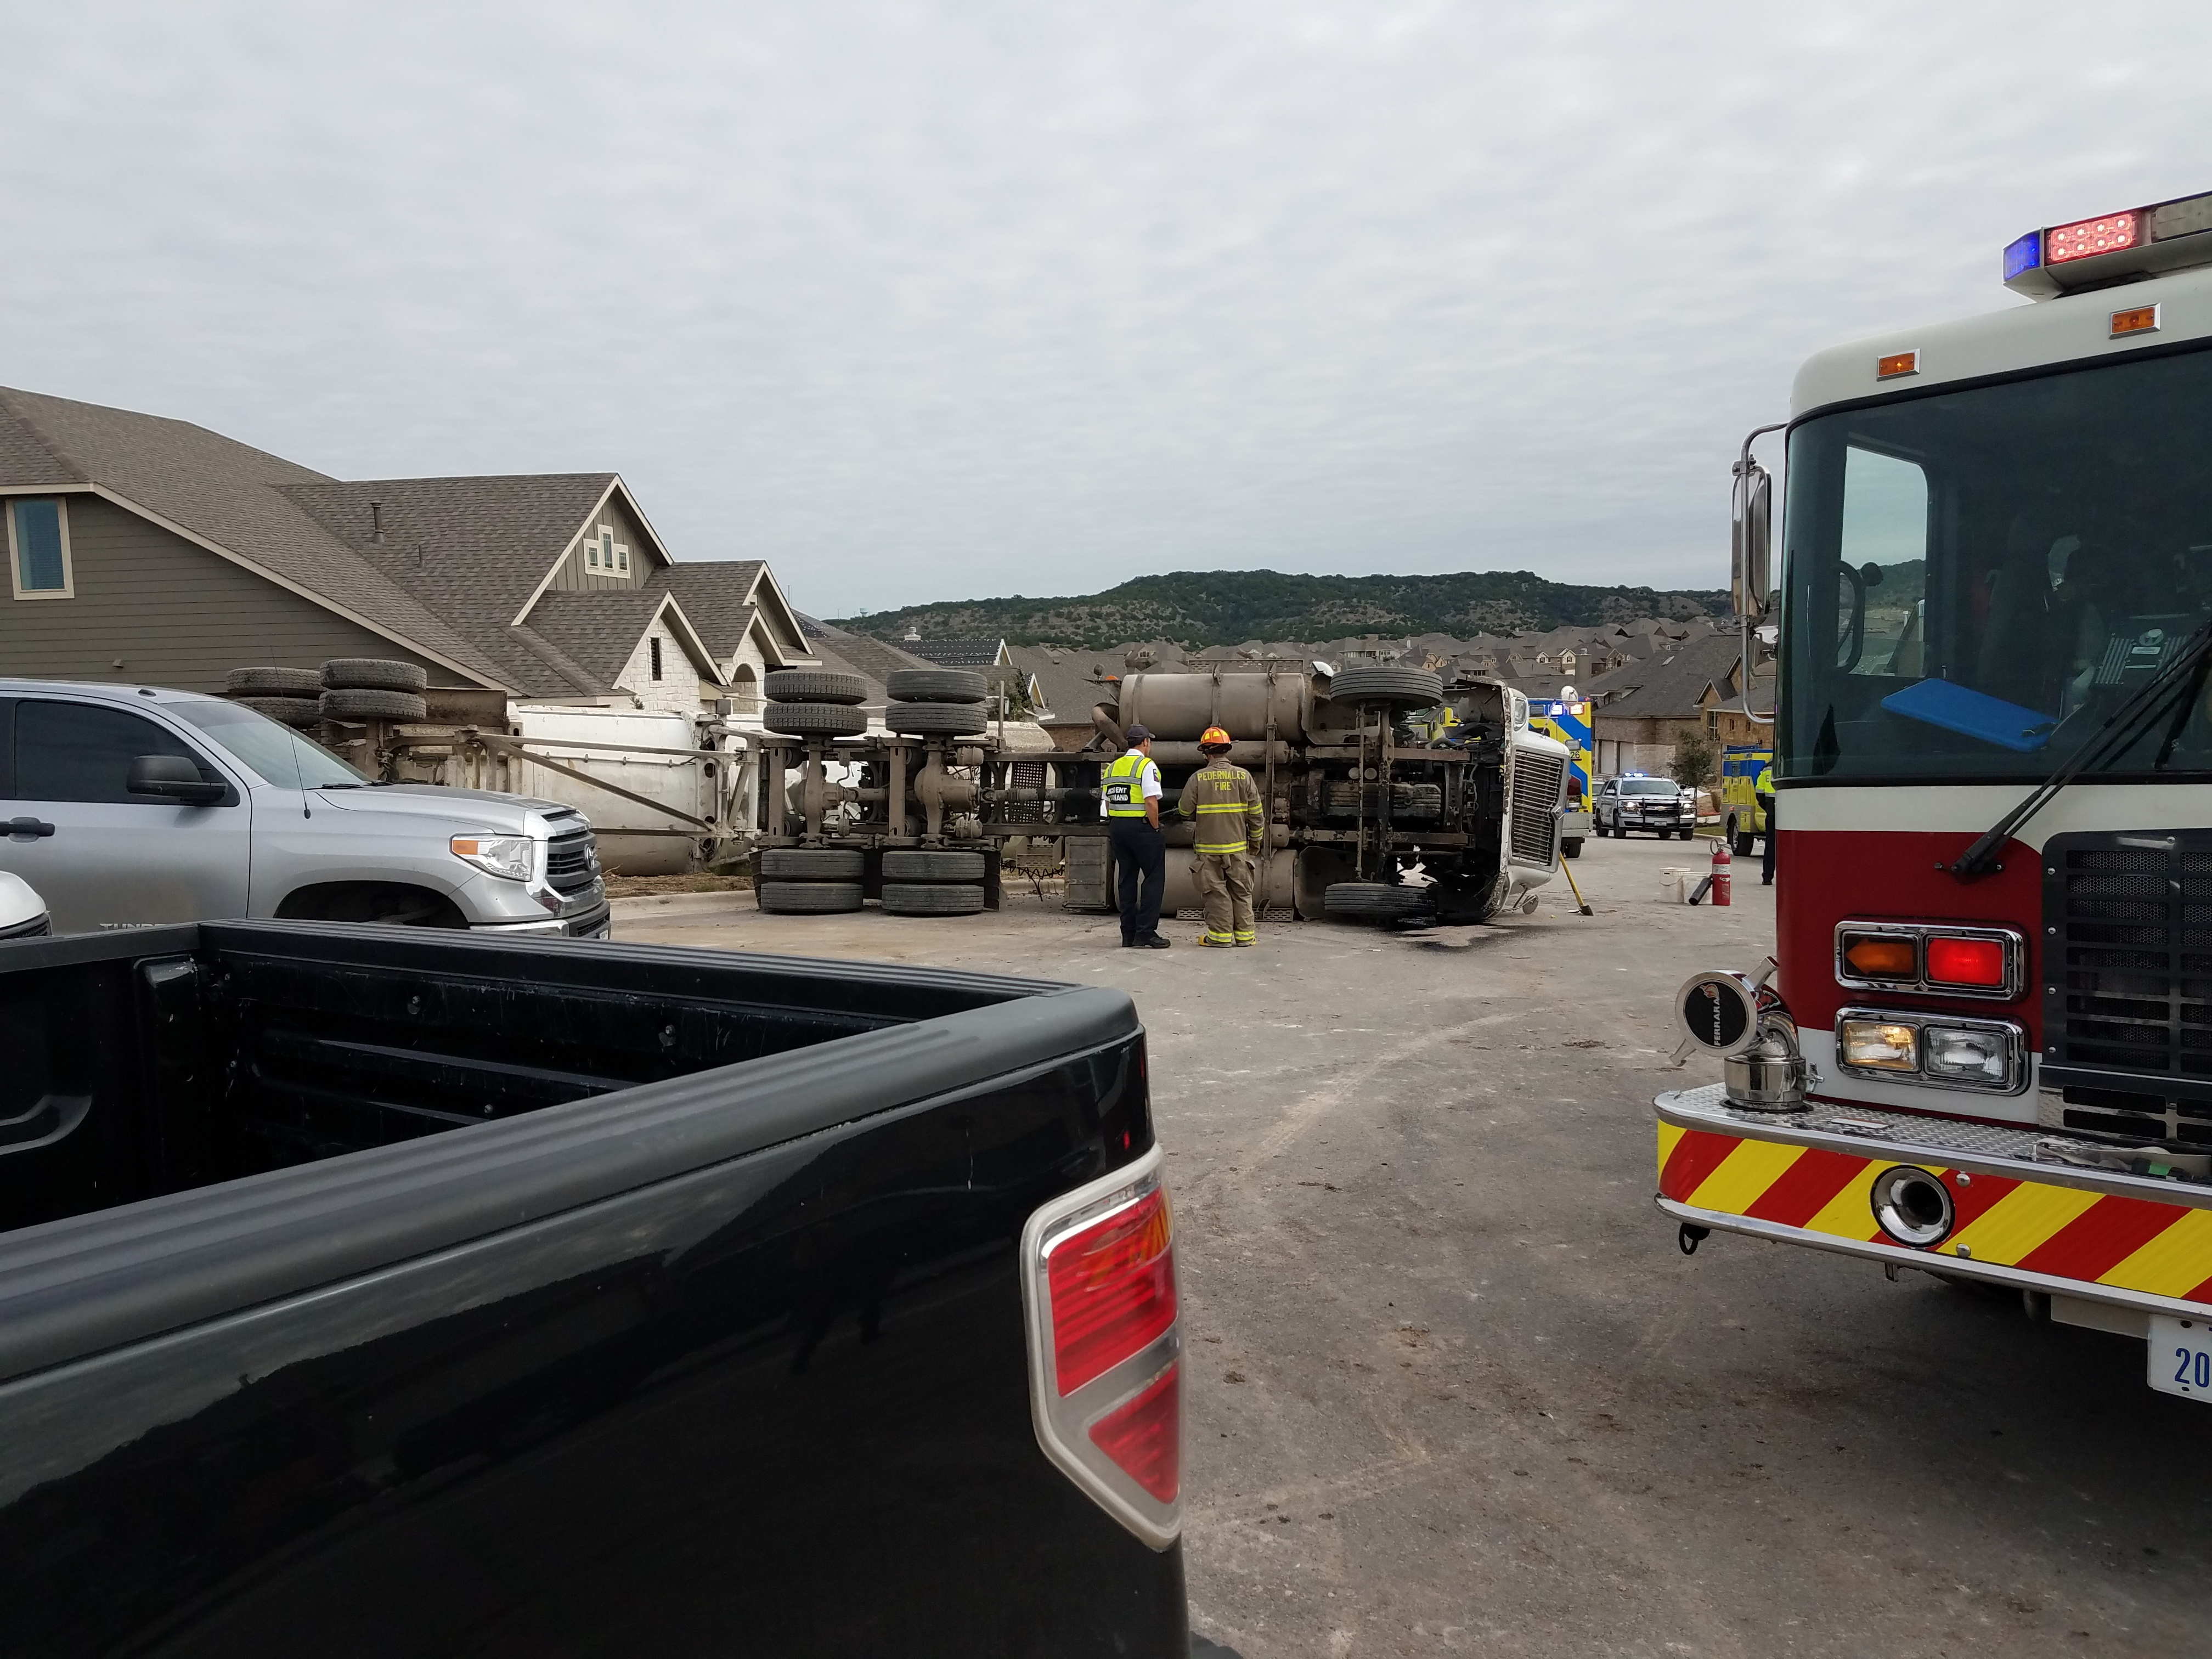 A man died after a dump truck tipped over crushing him on McKay Cove in the Sweetwater subdivision on Dec. 9, 2016. (ReportIt: Cory Armer)